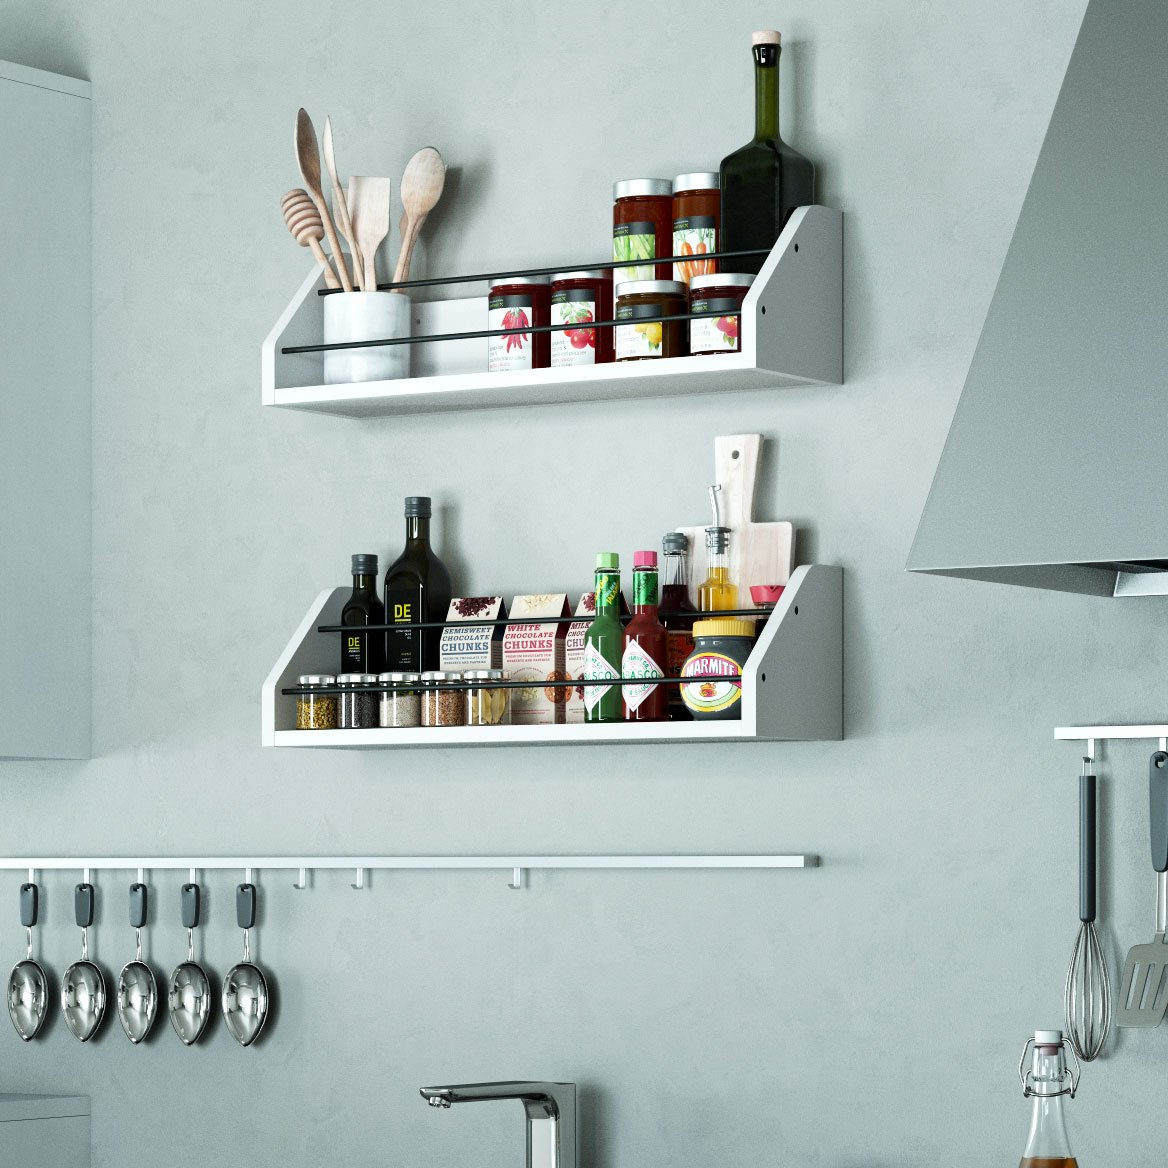 Amazon.com: Kitchen White Wall Shelf with Black Metal Section ...